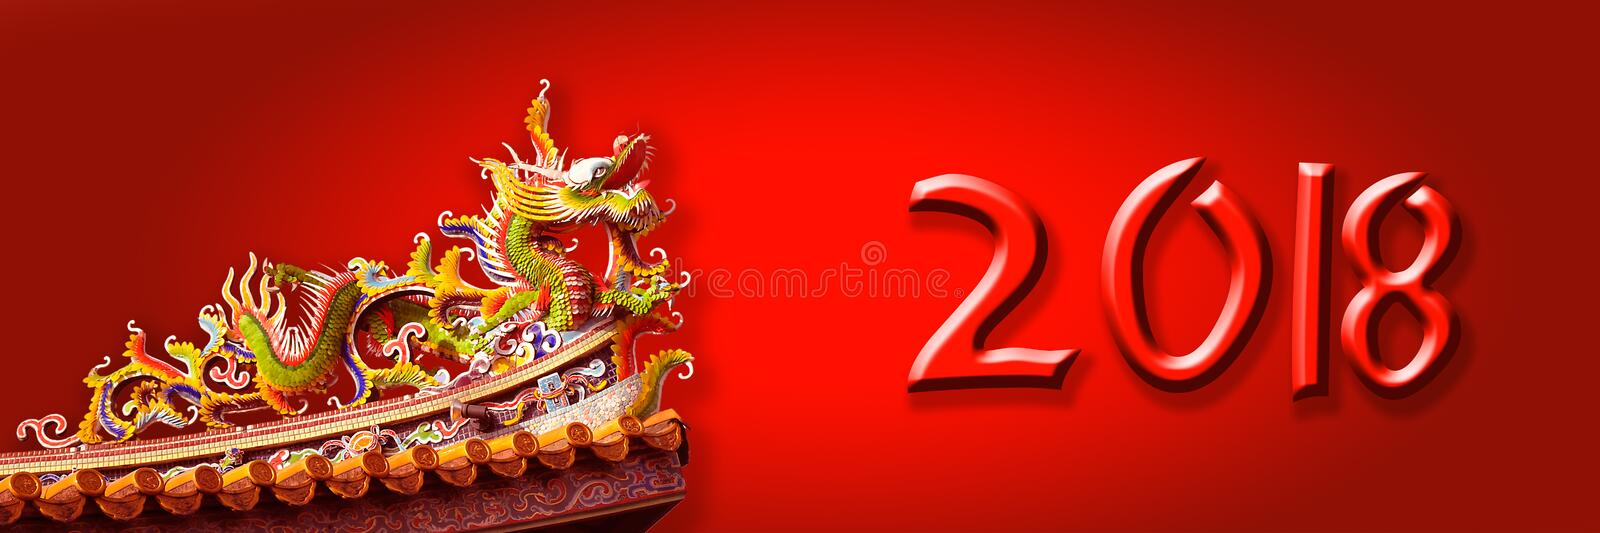 2018 chinese new year panoramic banner with a dragon on red background stock images